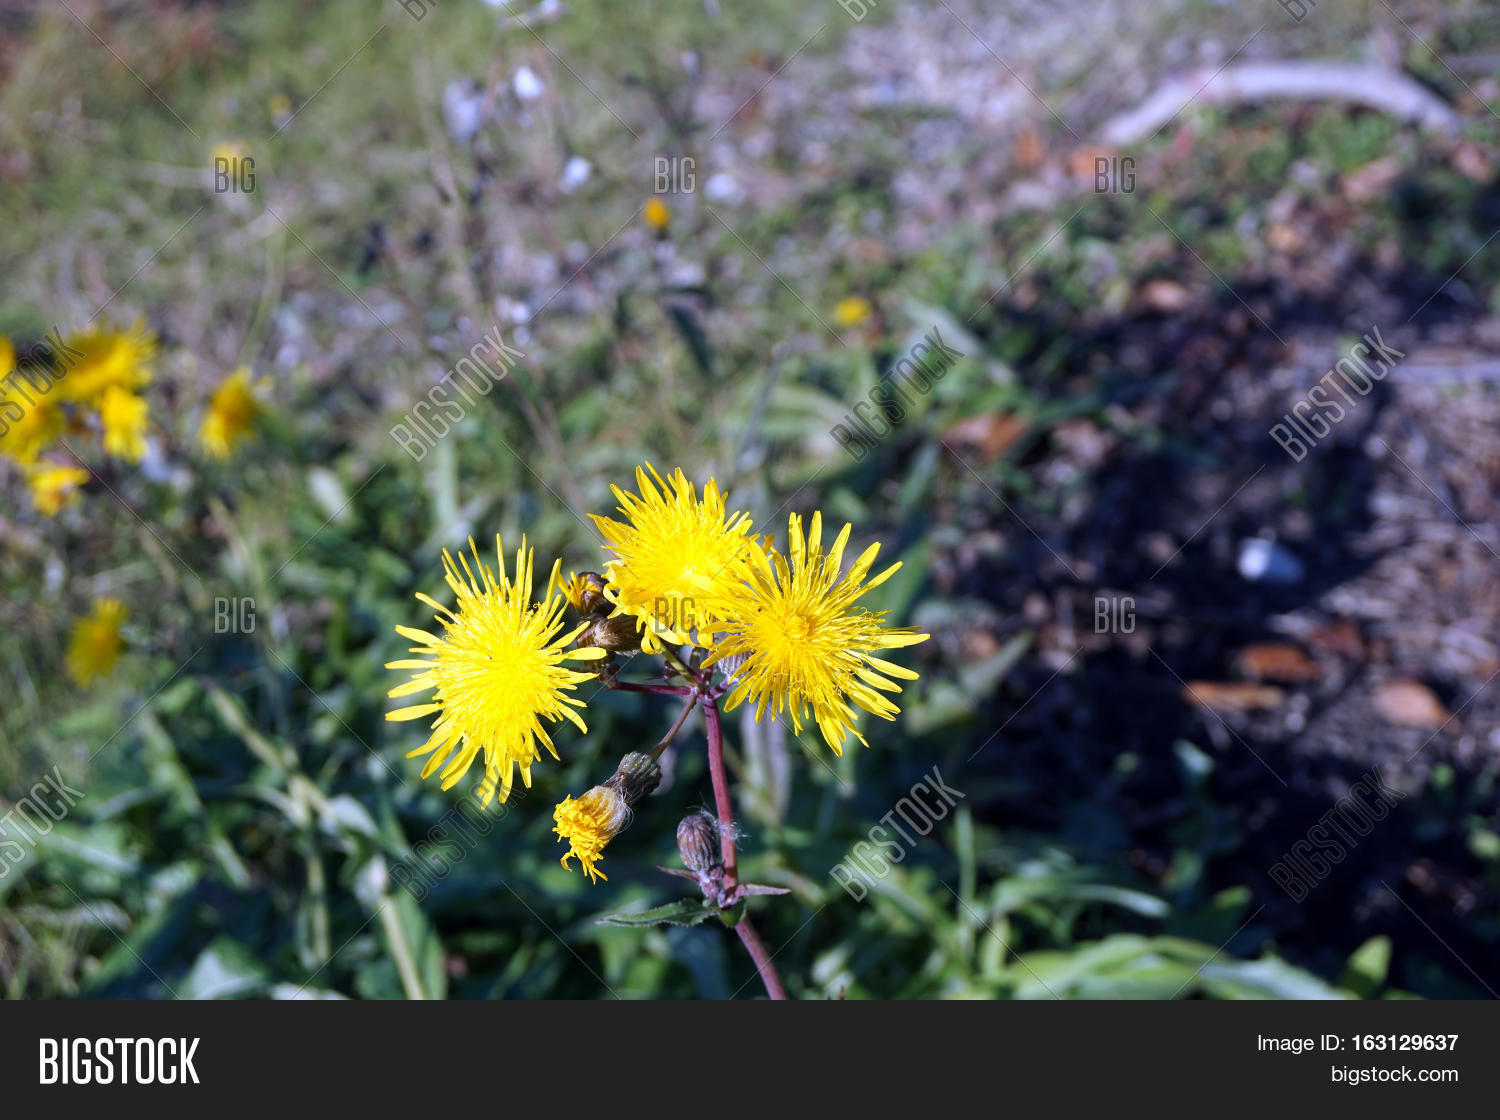 Yellow flowers field image photo free trial bigstock yellow flowers of the field sow thistle sonchus arvensis also called corn sow mightylinksfo